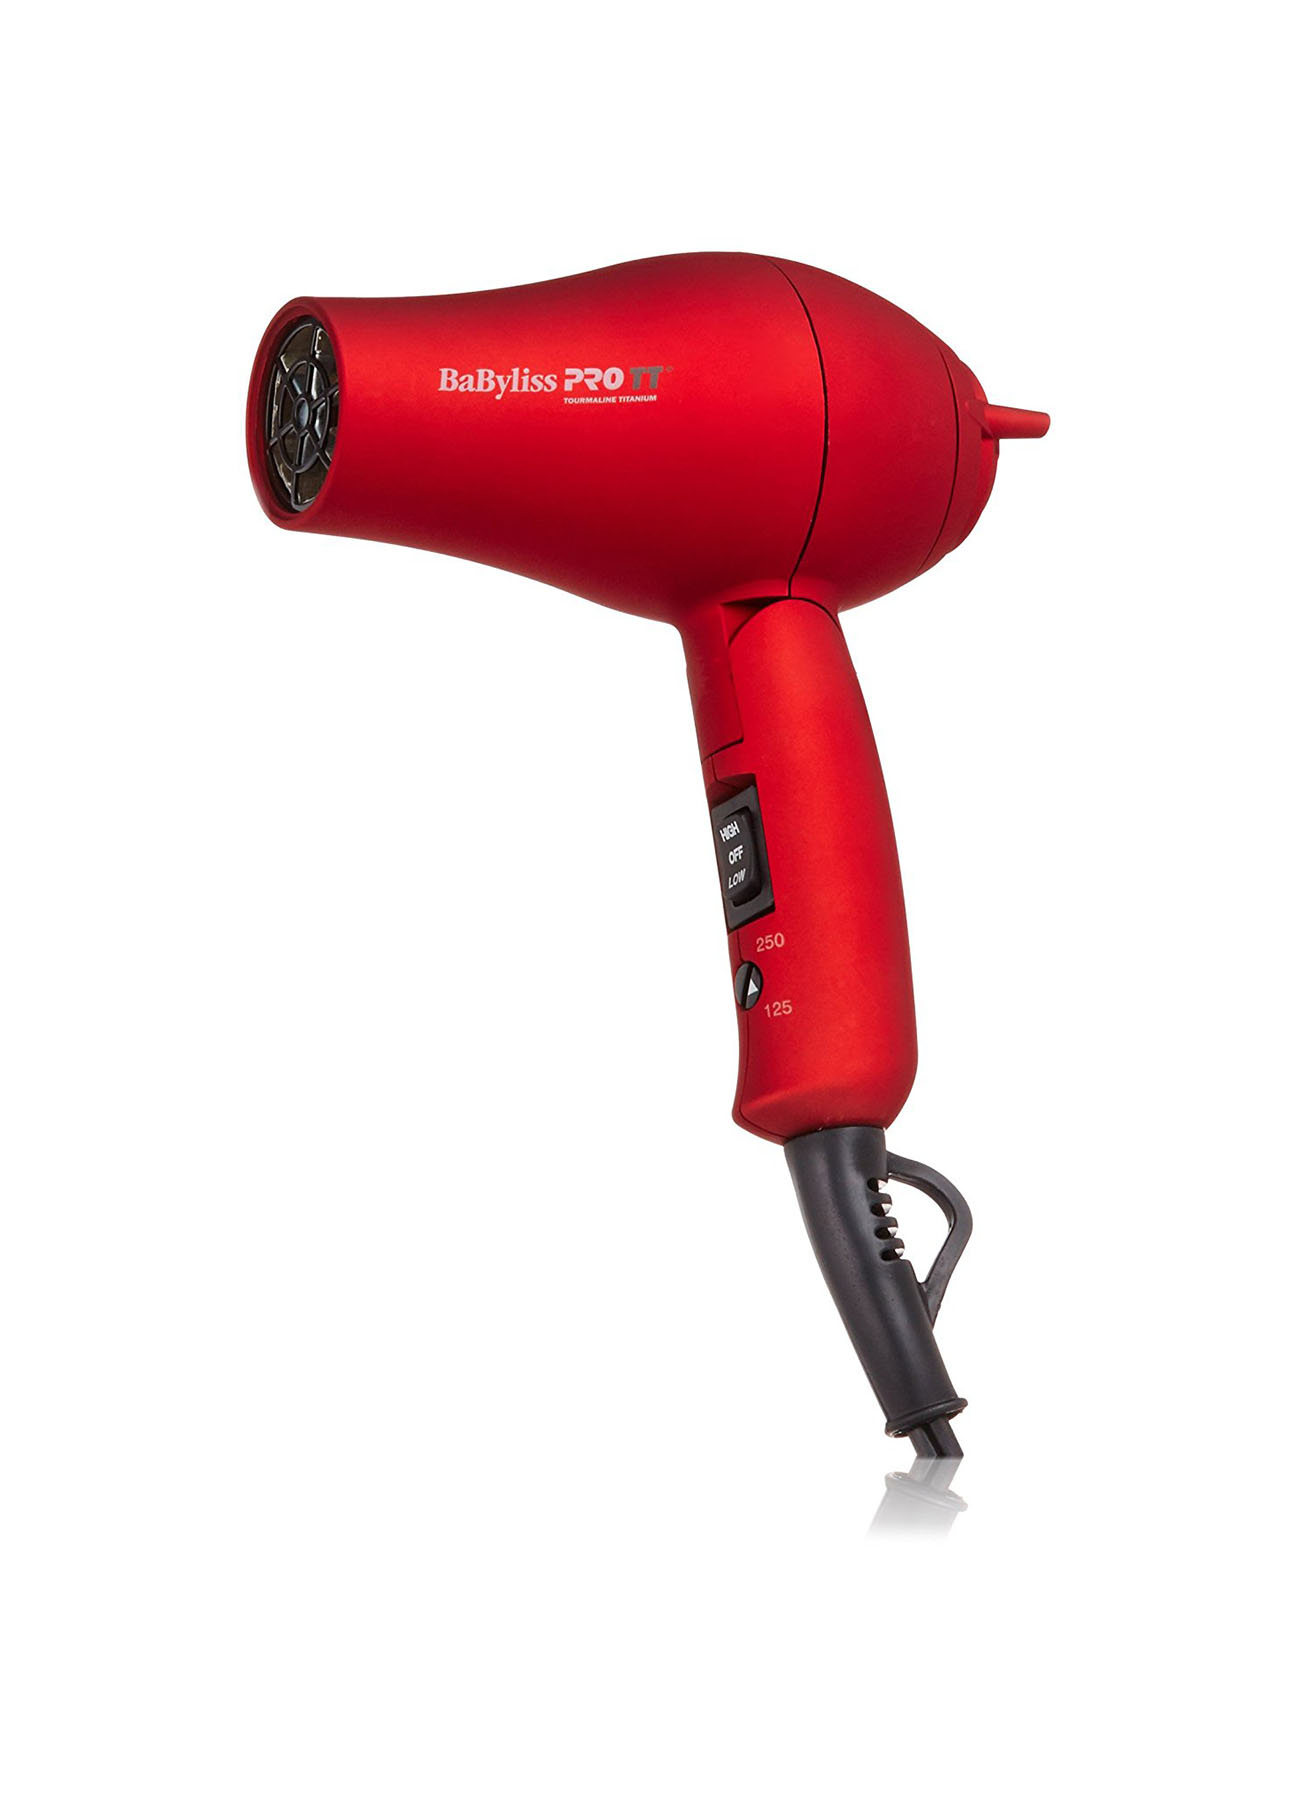 The Travel Hair Dryer So Good I Used It Every Day For A